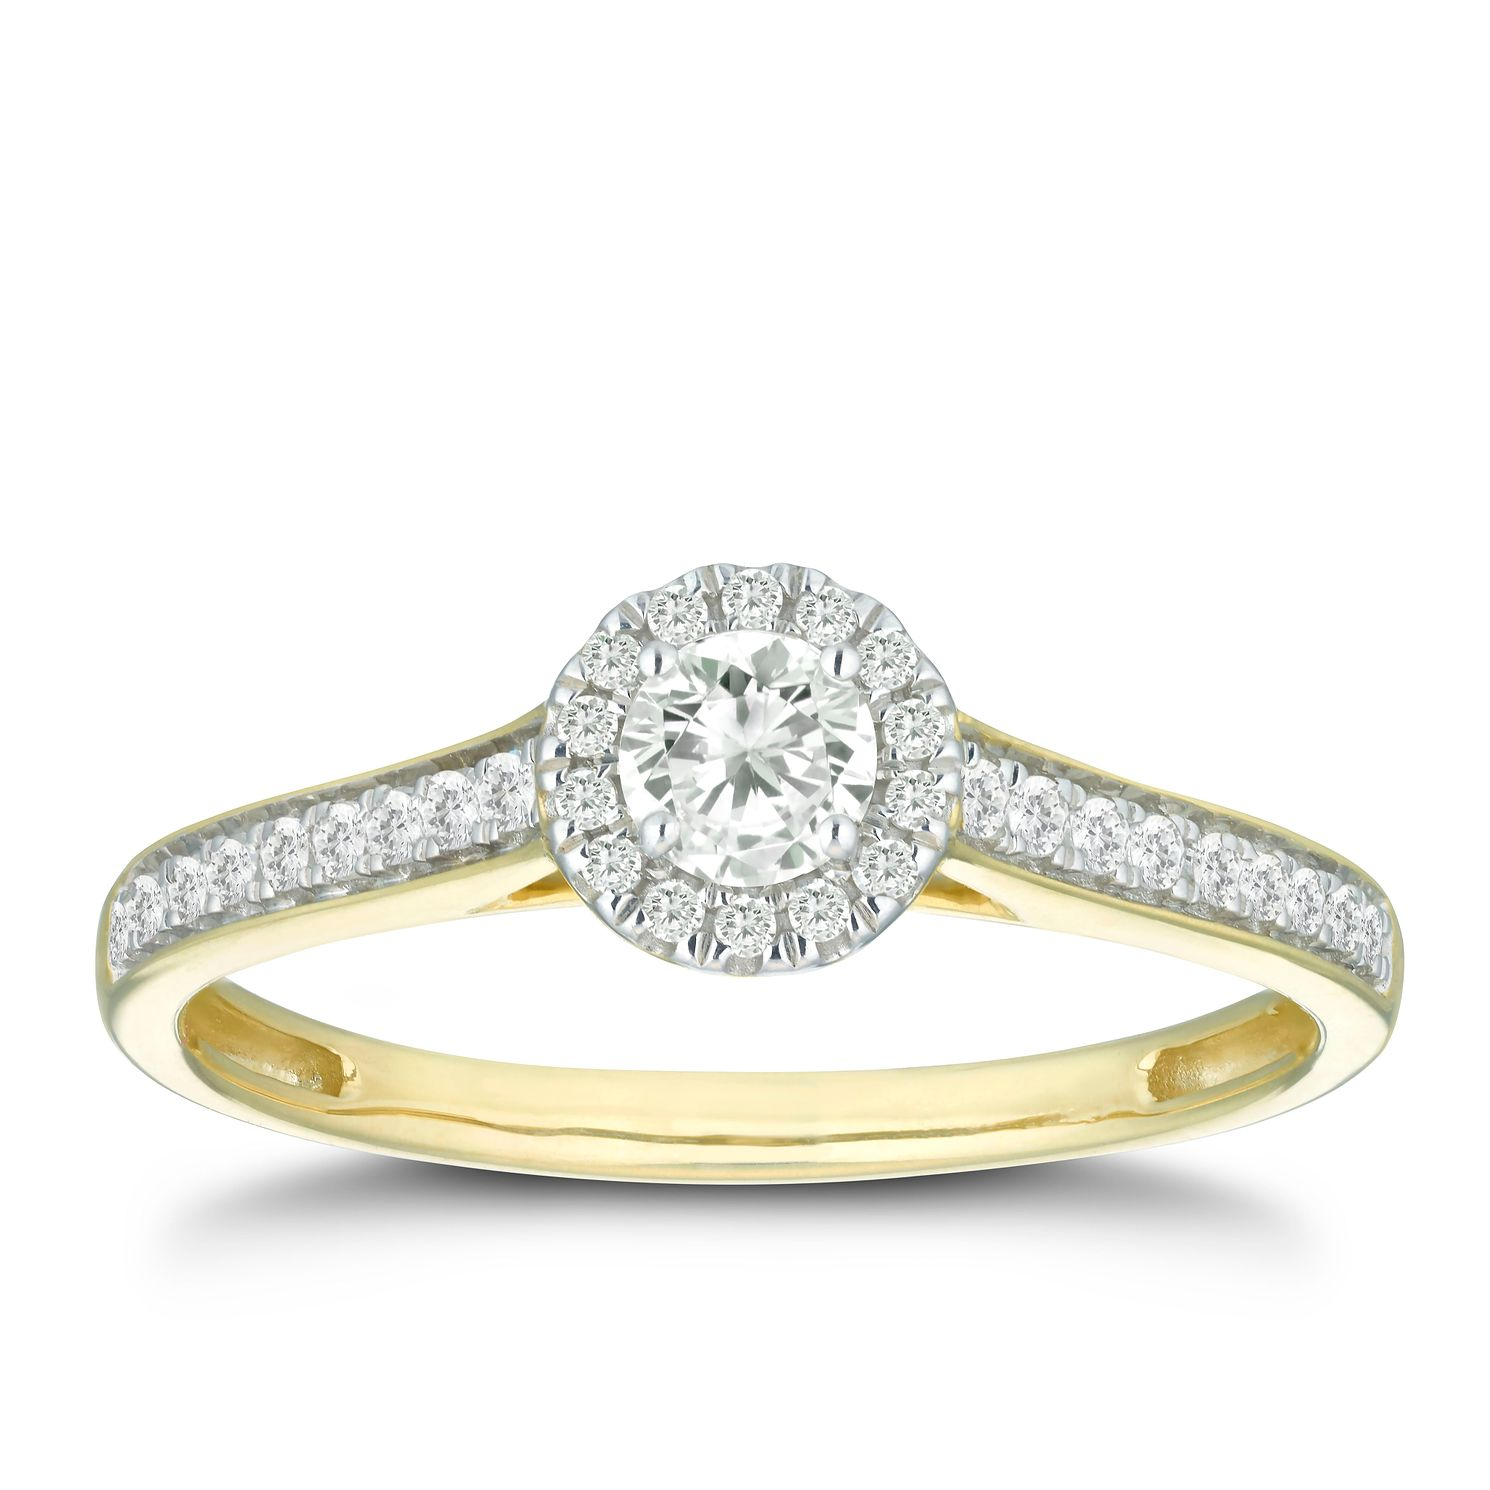 9ct Yellow Gold 1/3ct Diamond Solitaire Ring - Product number 5923964